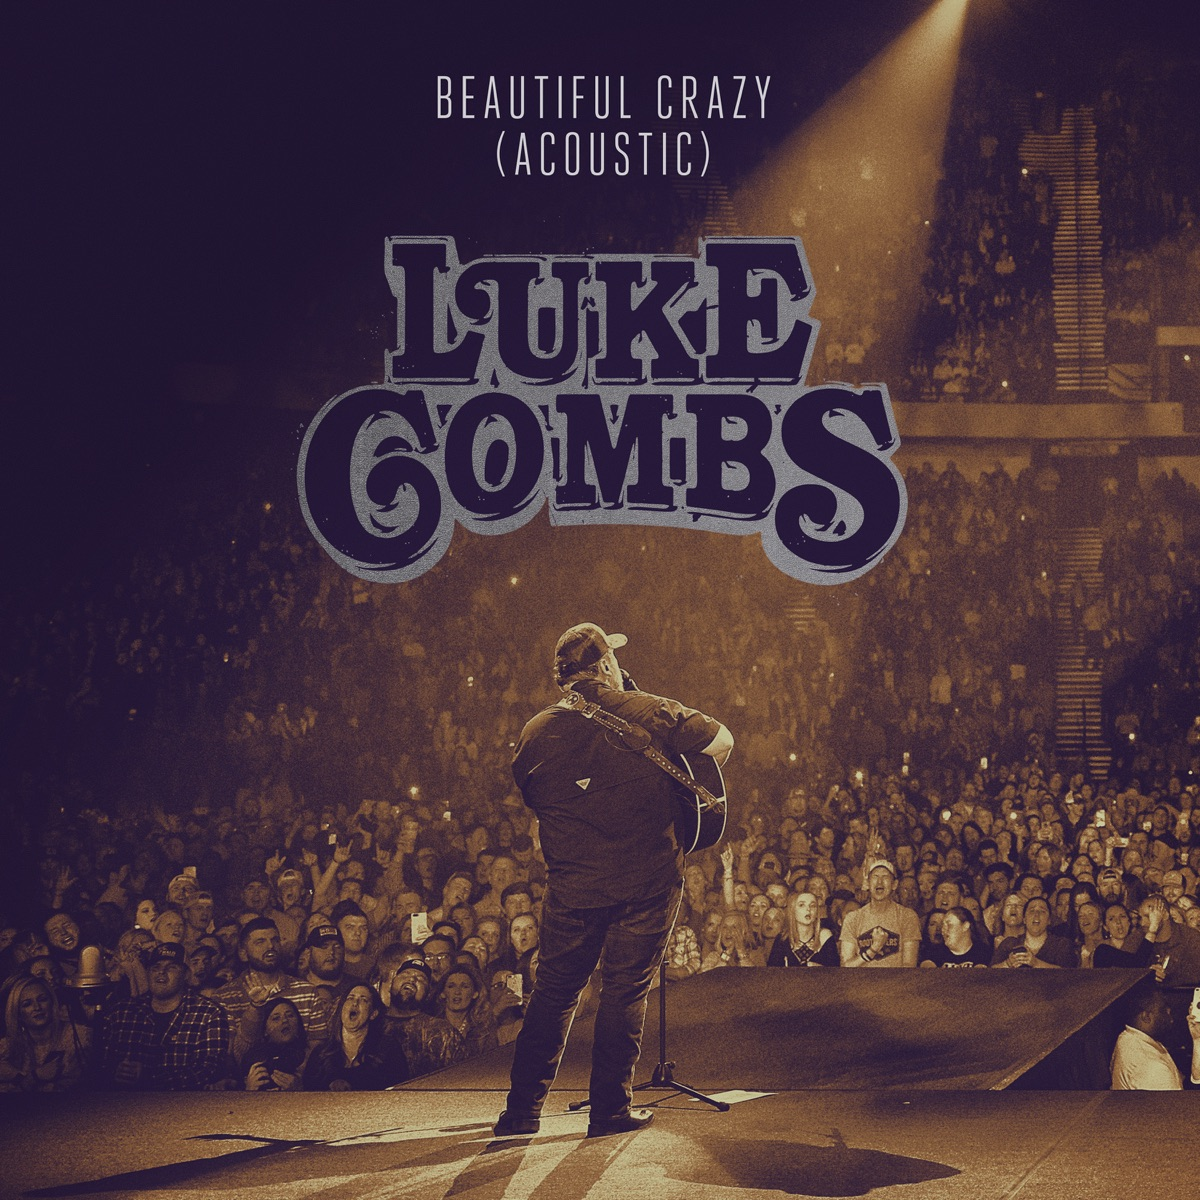 Beautiful Crazy Acoustic - Single Luke Combs CD cover